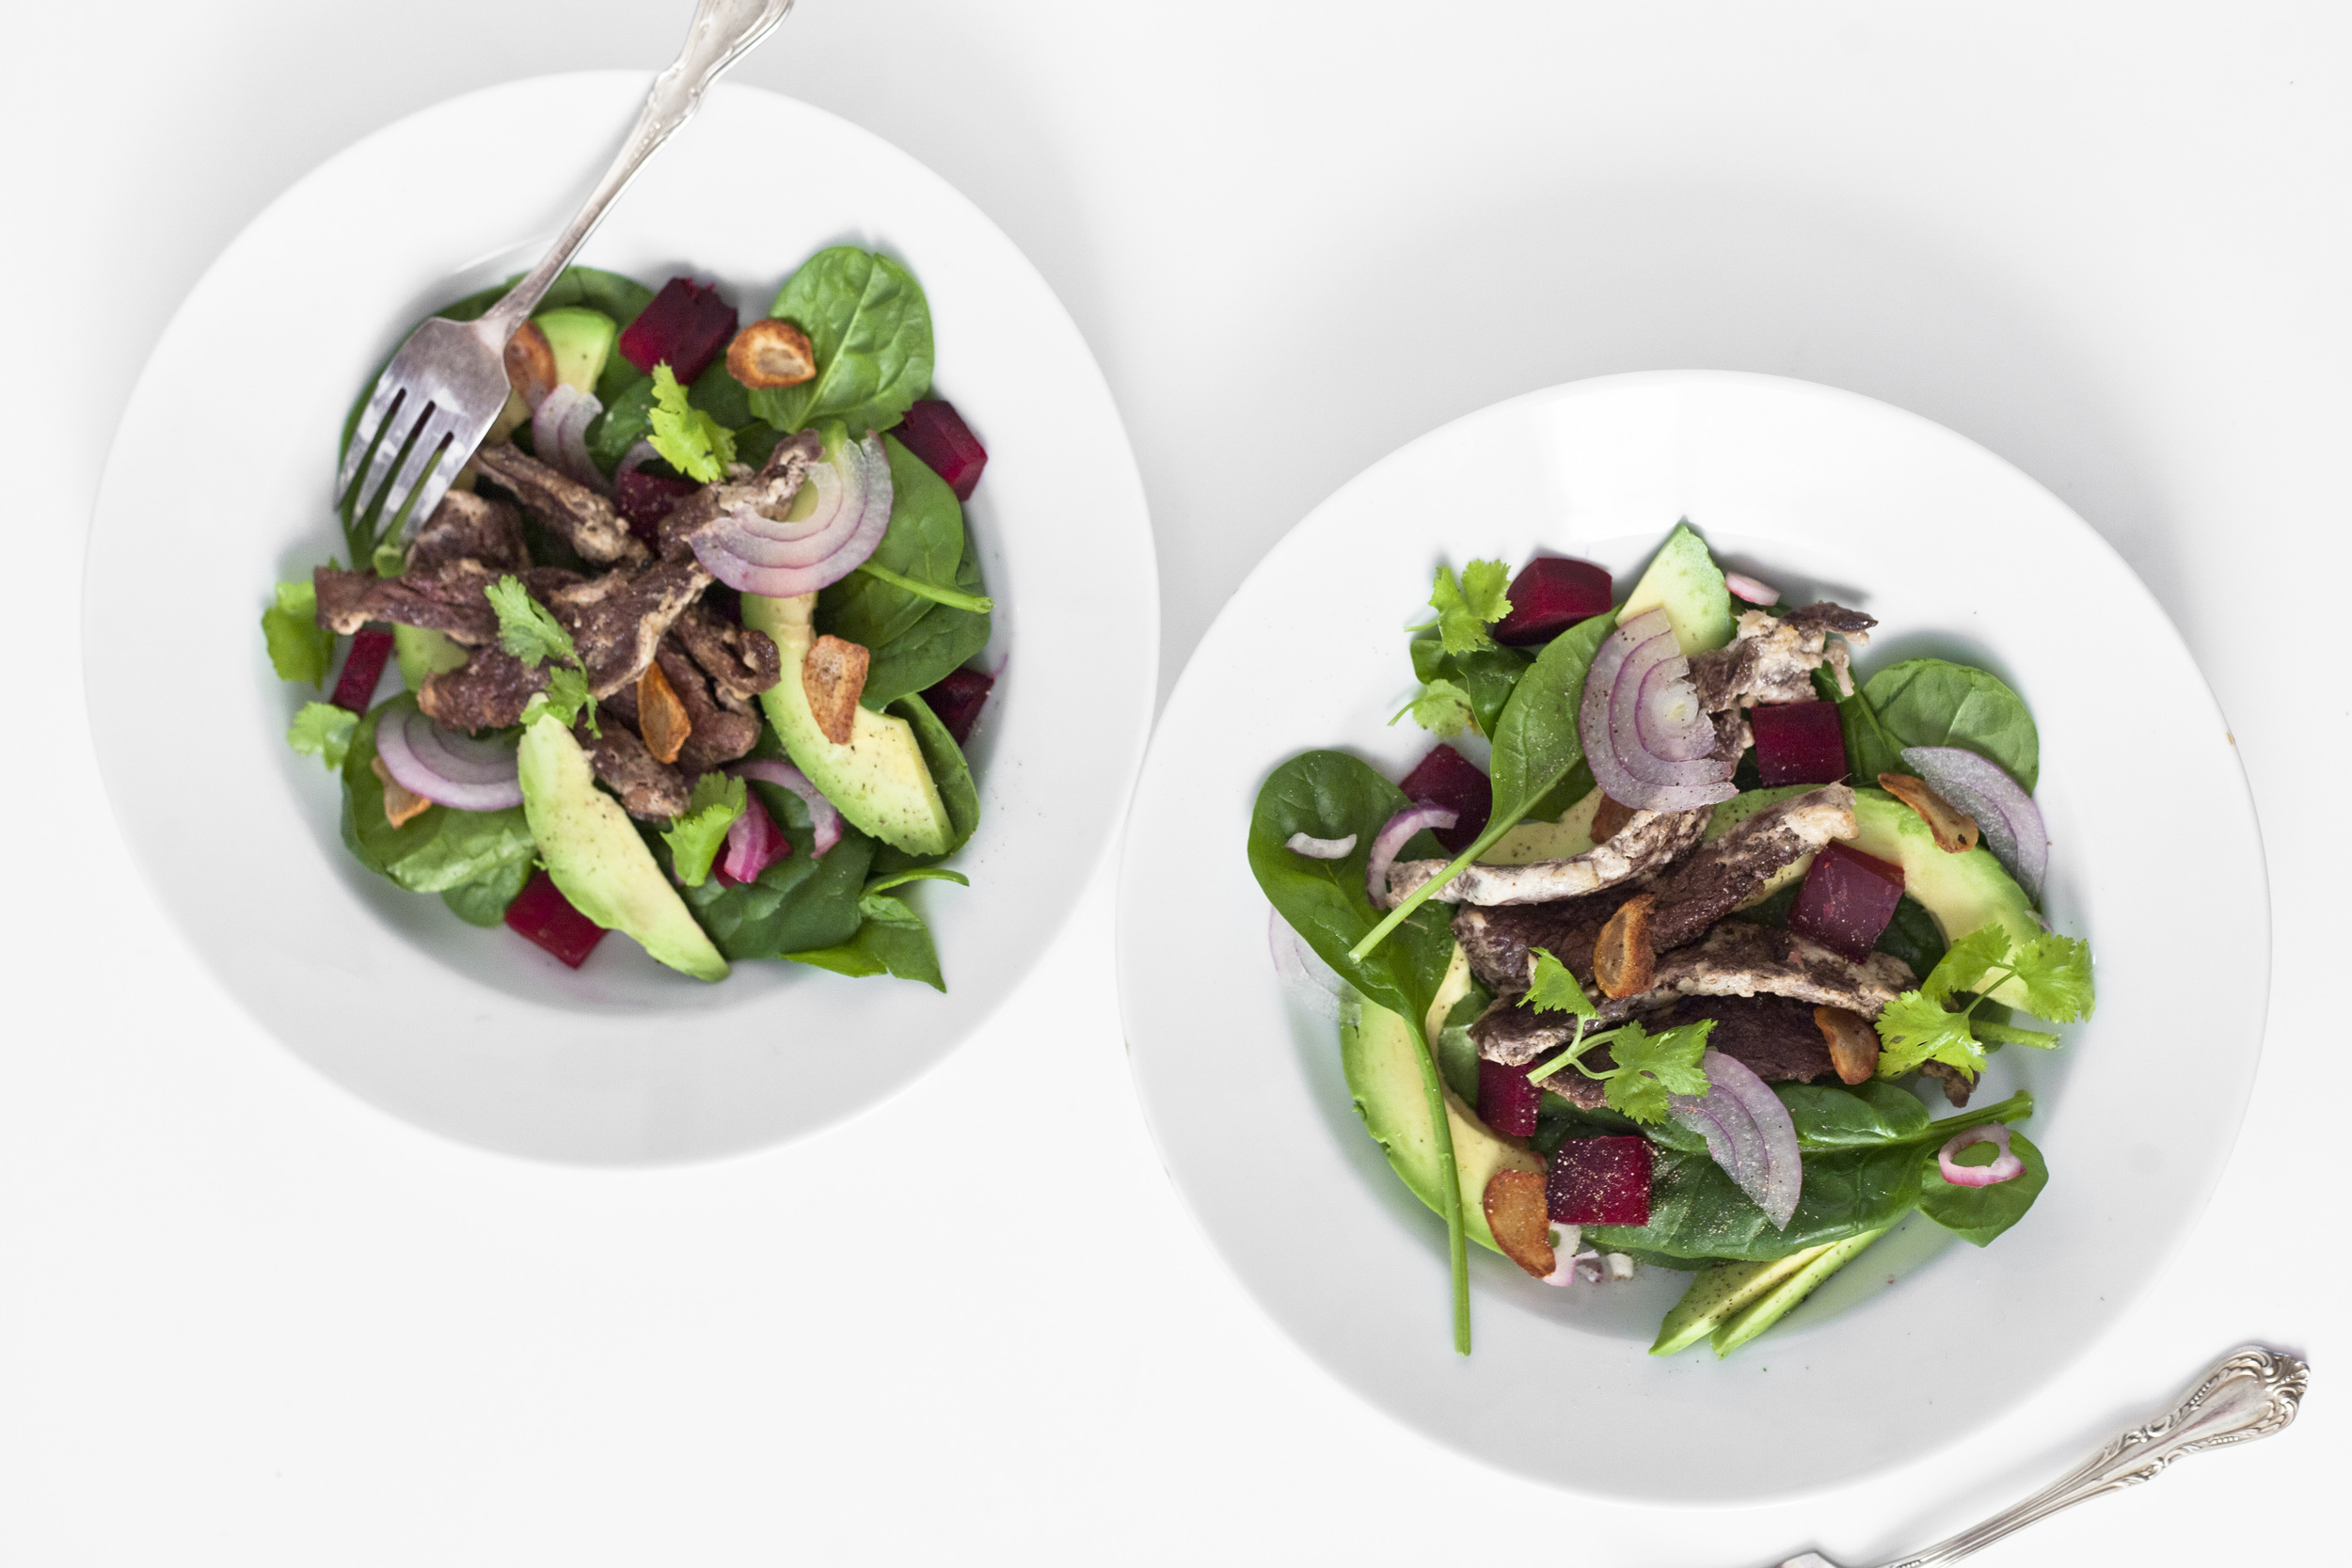 Tender Steak Salad with Avocado and Beets